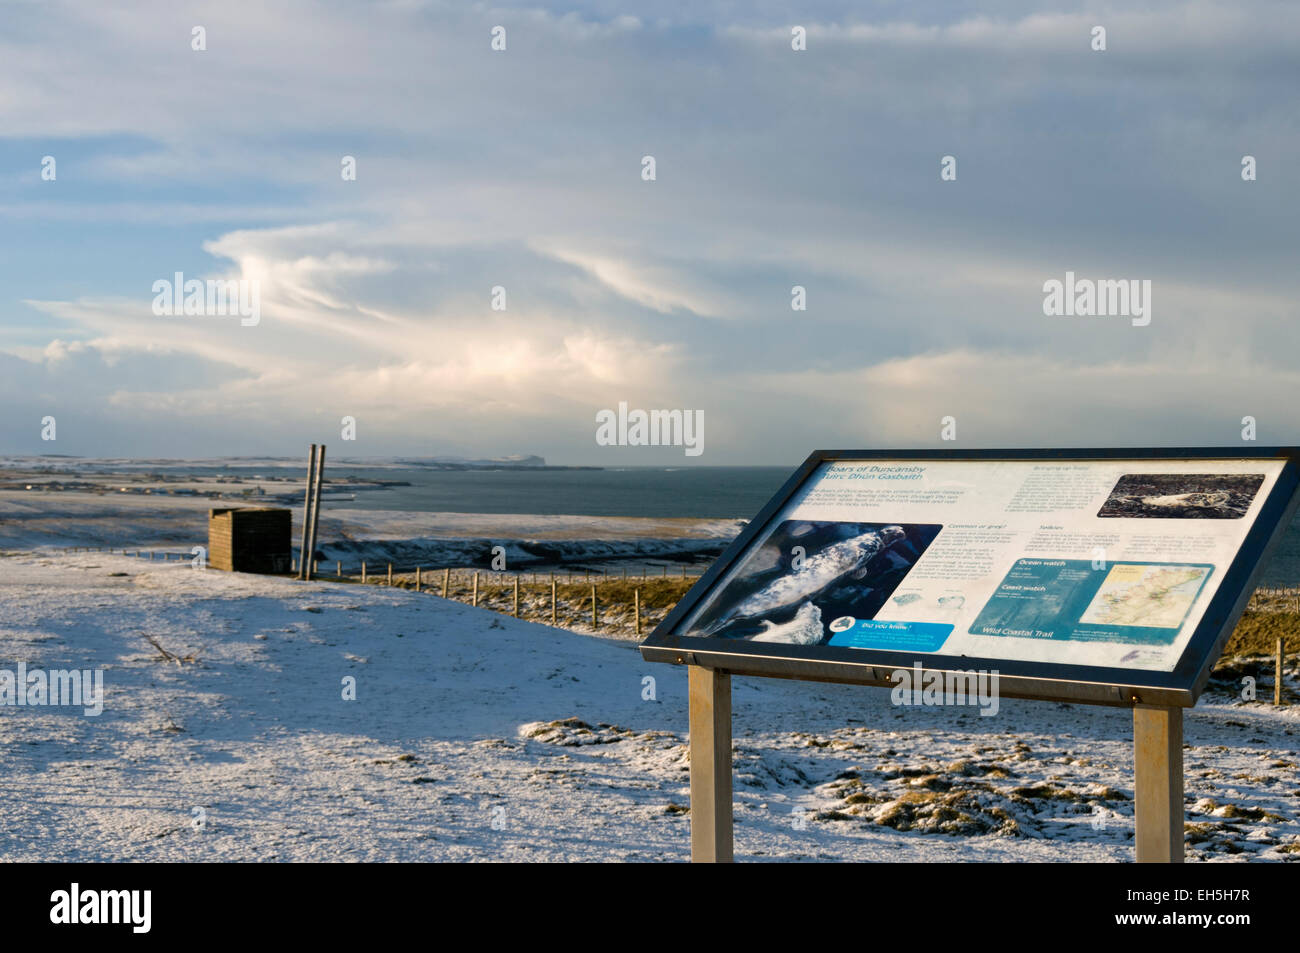 Information sign at Duncansby Head, near John o'Groats, Caithness, Scotland, UK Looking towards Dunnet Head - Stock Image